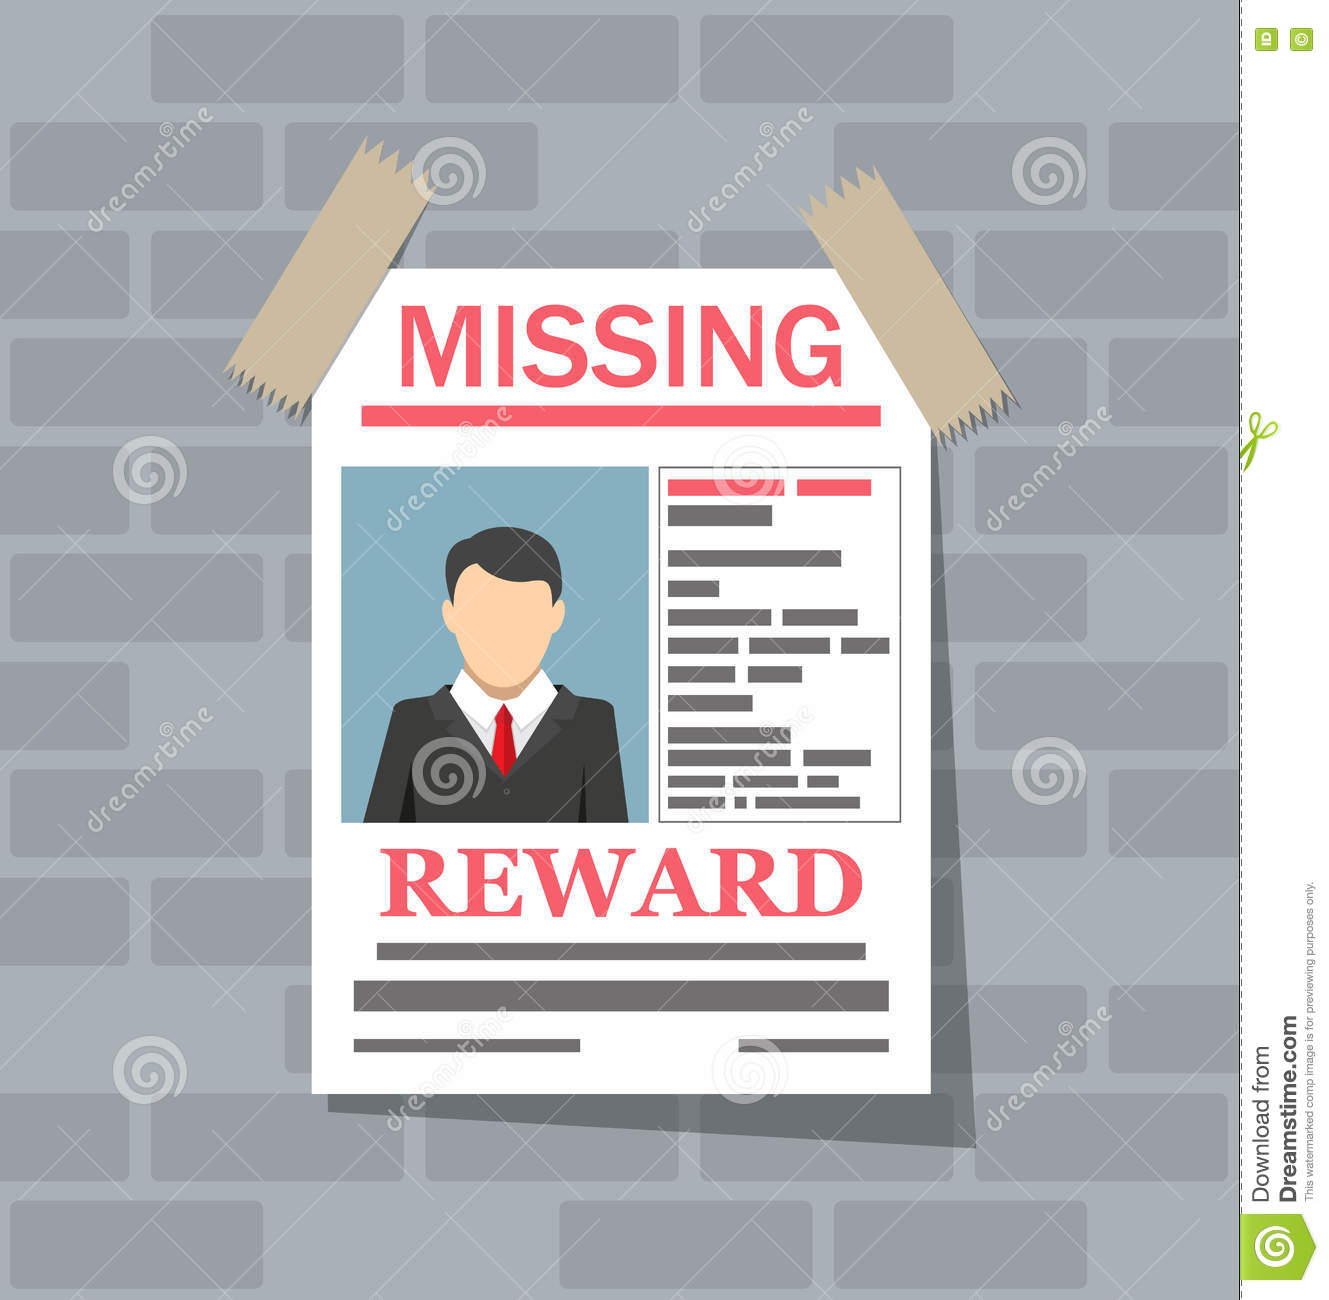 Missing Person Poster Images Image 16343674 – Missing Person Poster